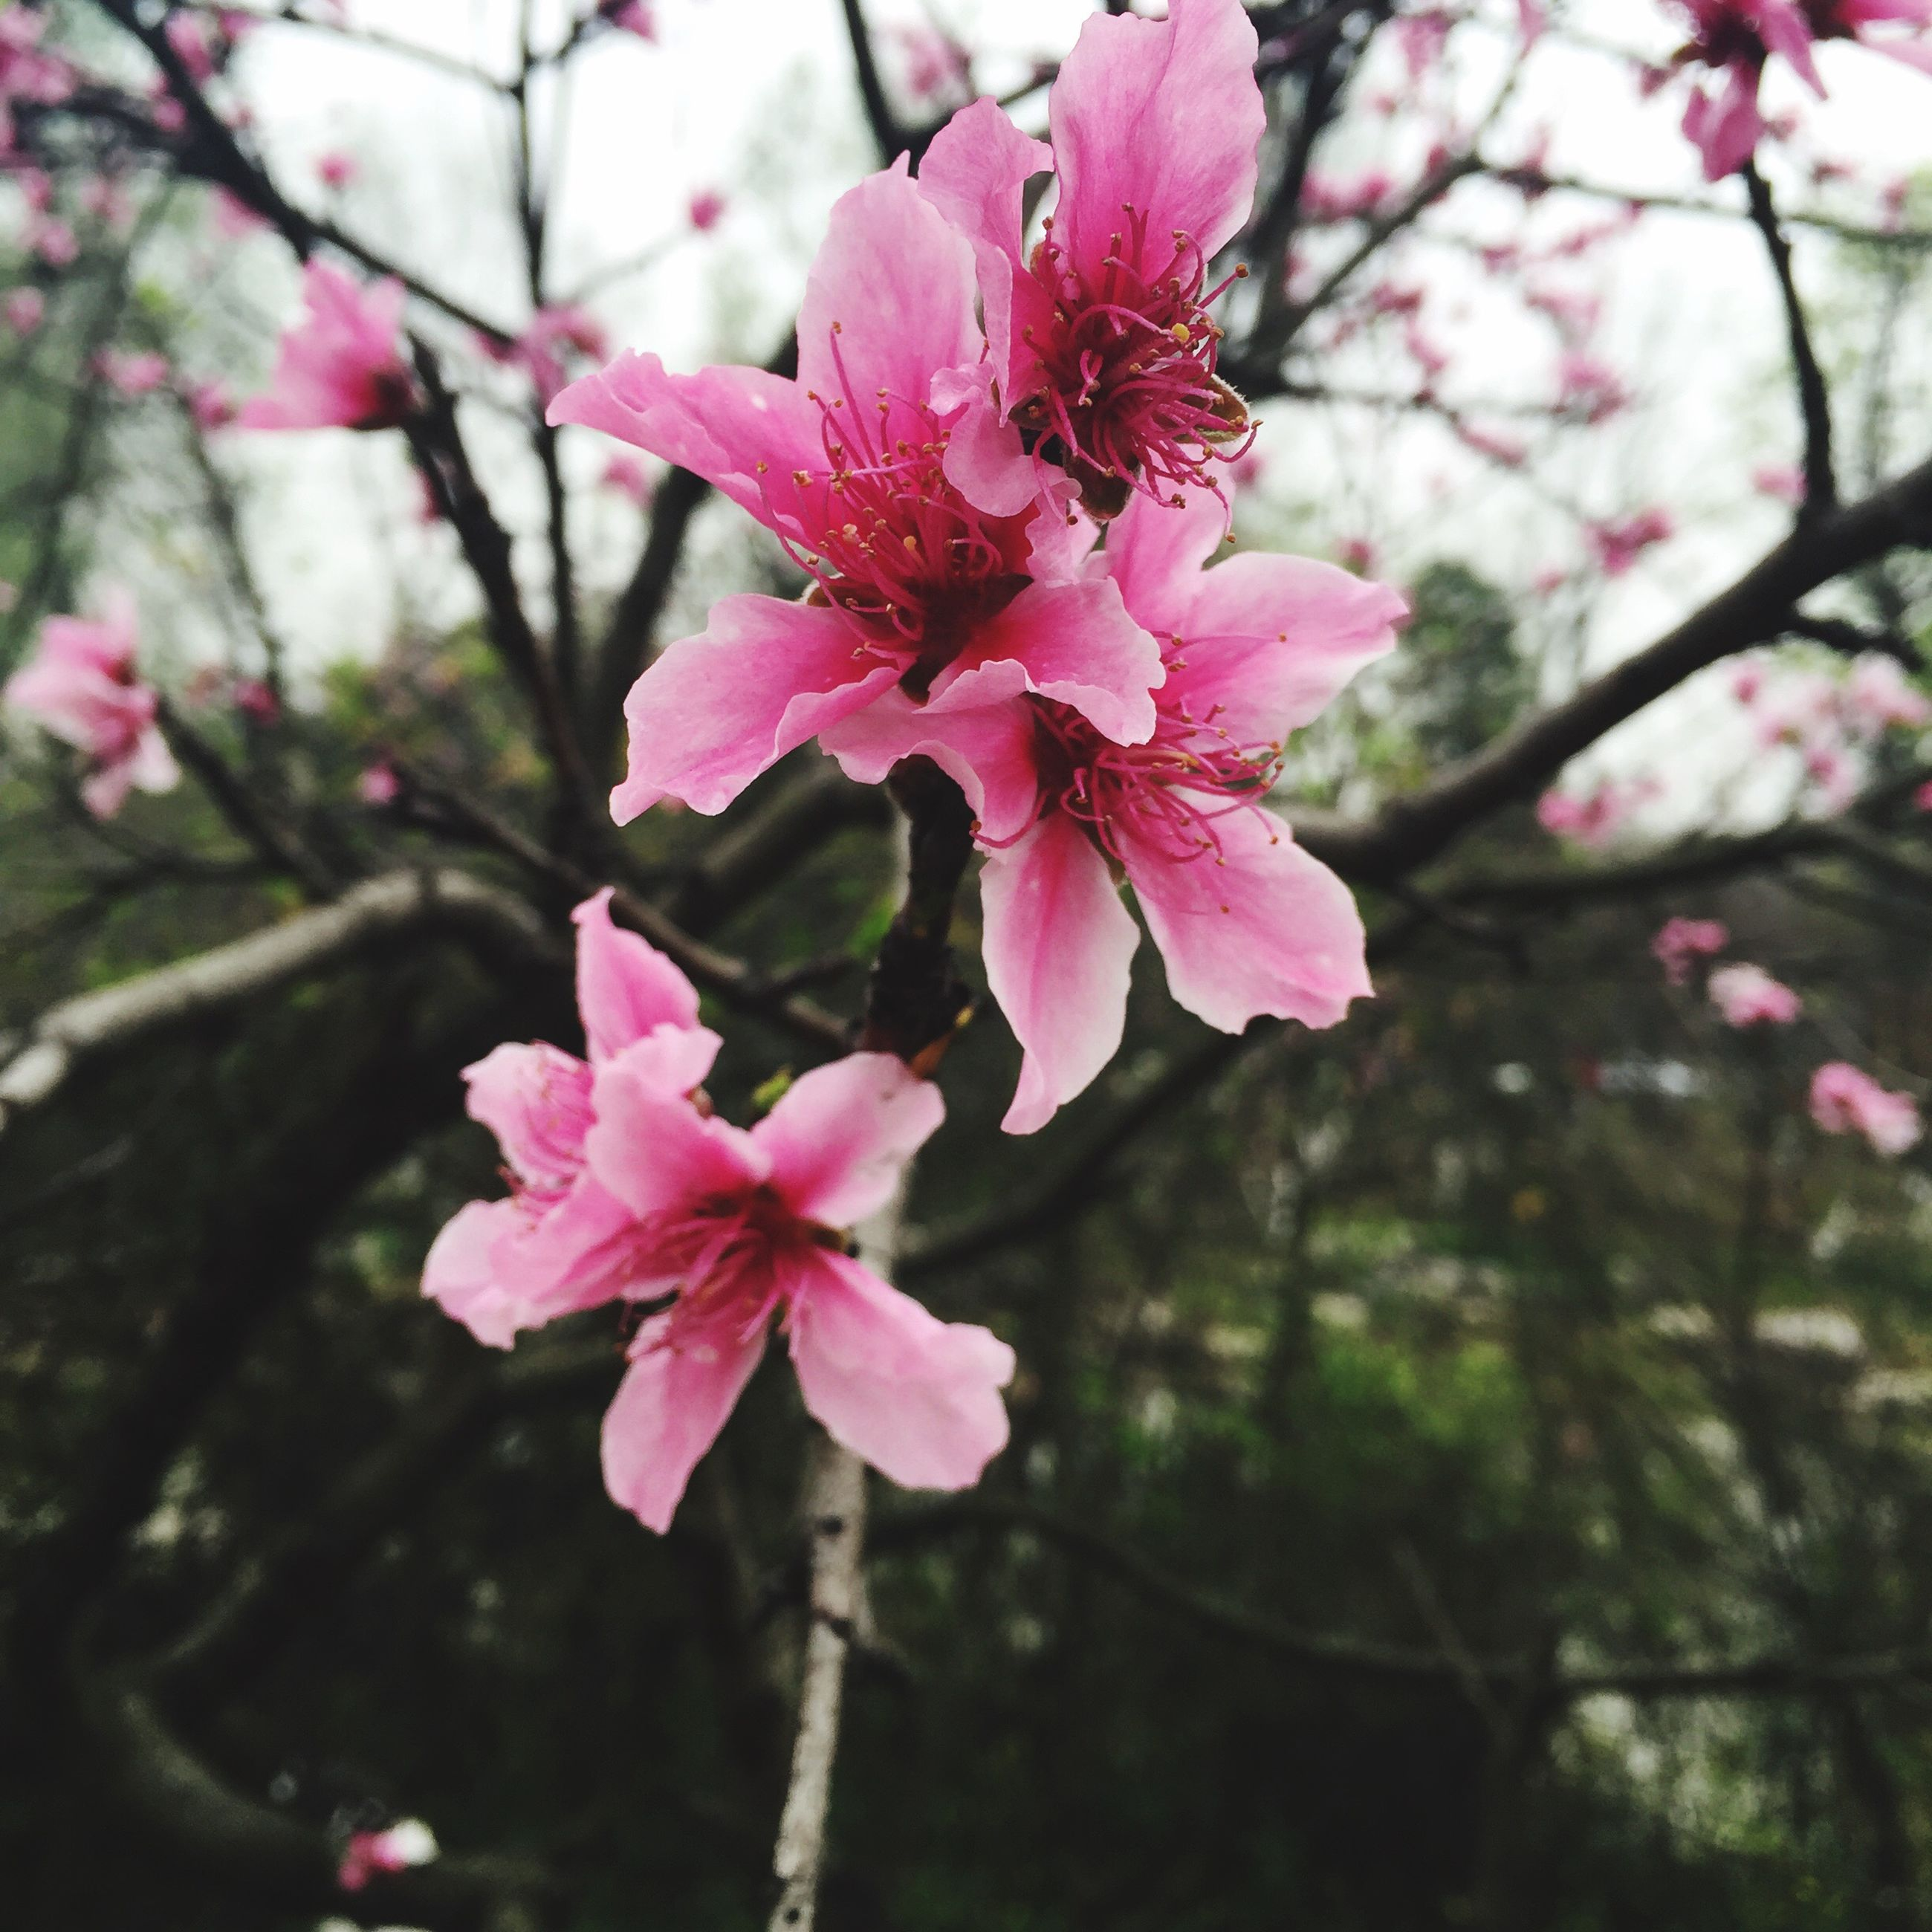 flower, freshness, pink color, growth, fragility, beauty in nature, branch, petal, tree, focus on foreground, nature, close-up, blossom, flower head, blooming, in bloom, cherry blossom, pink, springtime, day